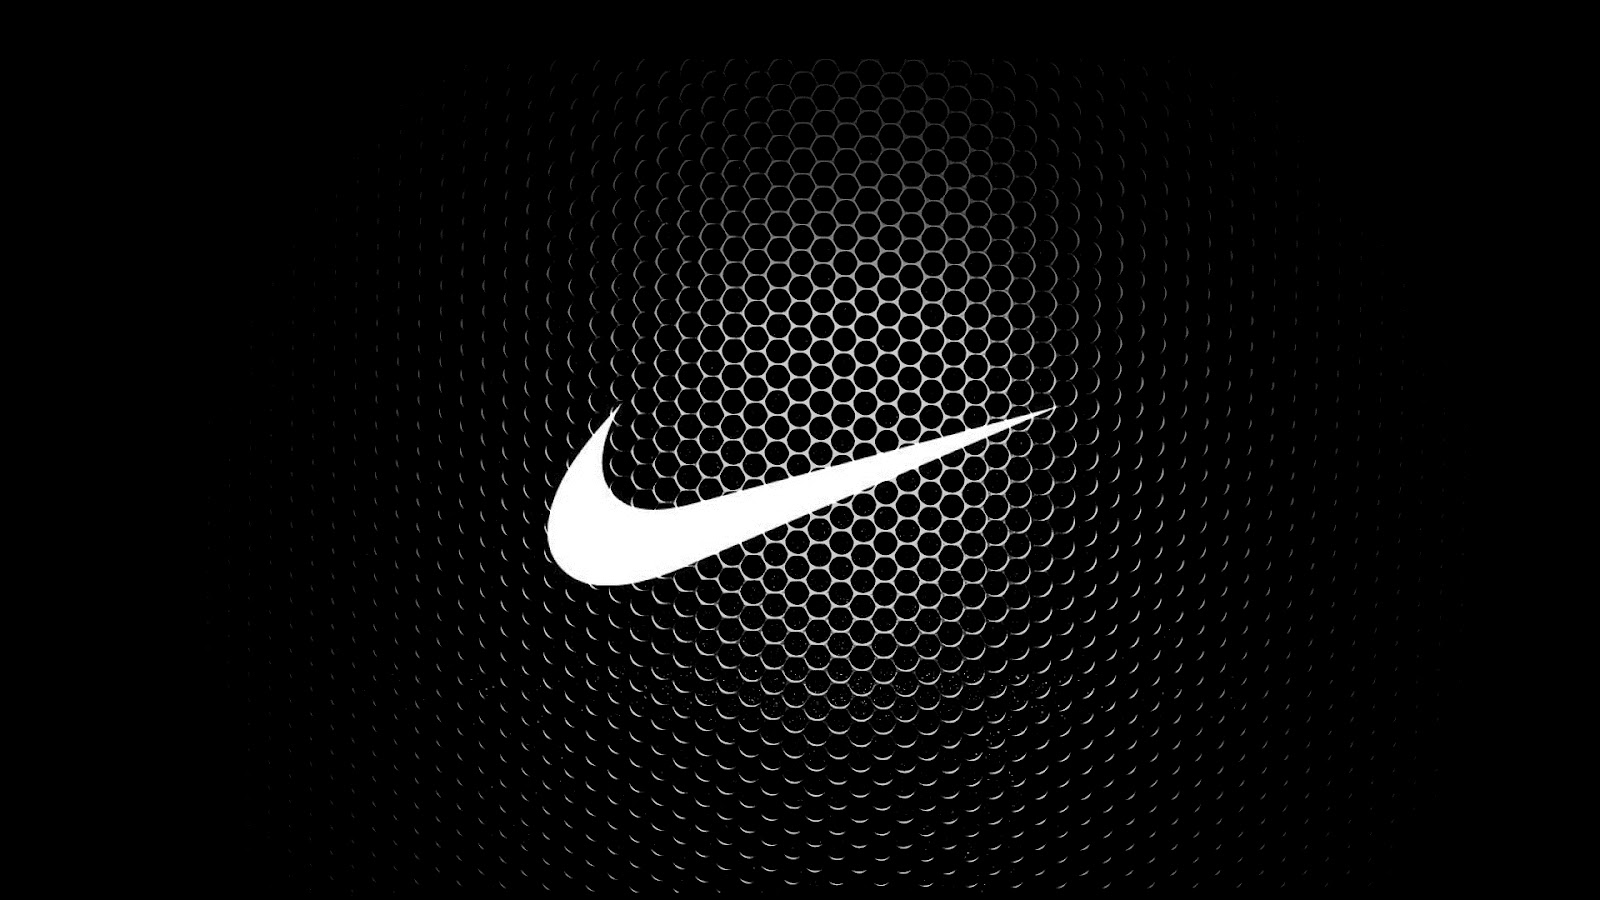 48 Red And Black Nike Wallpaper On Wallpapersafari